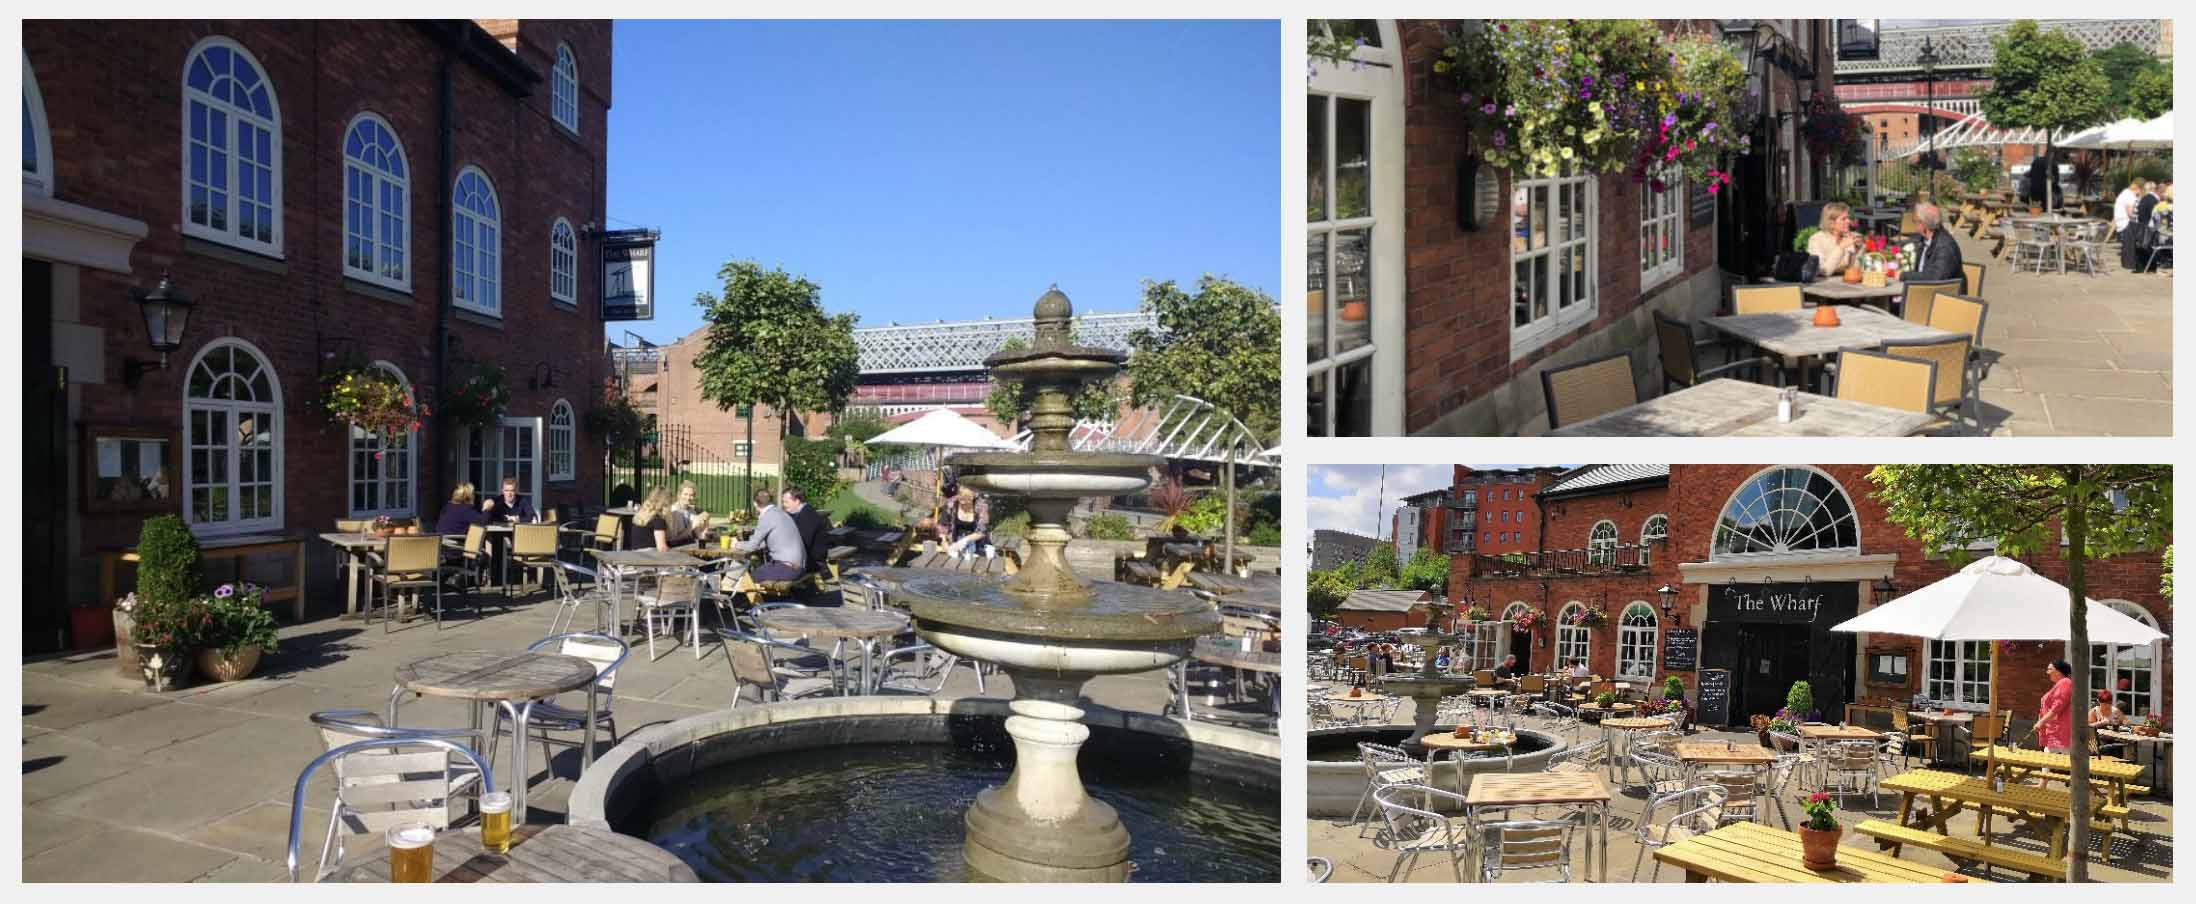 Best Beer Gardens in Manchester - The Wharf